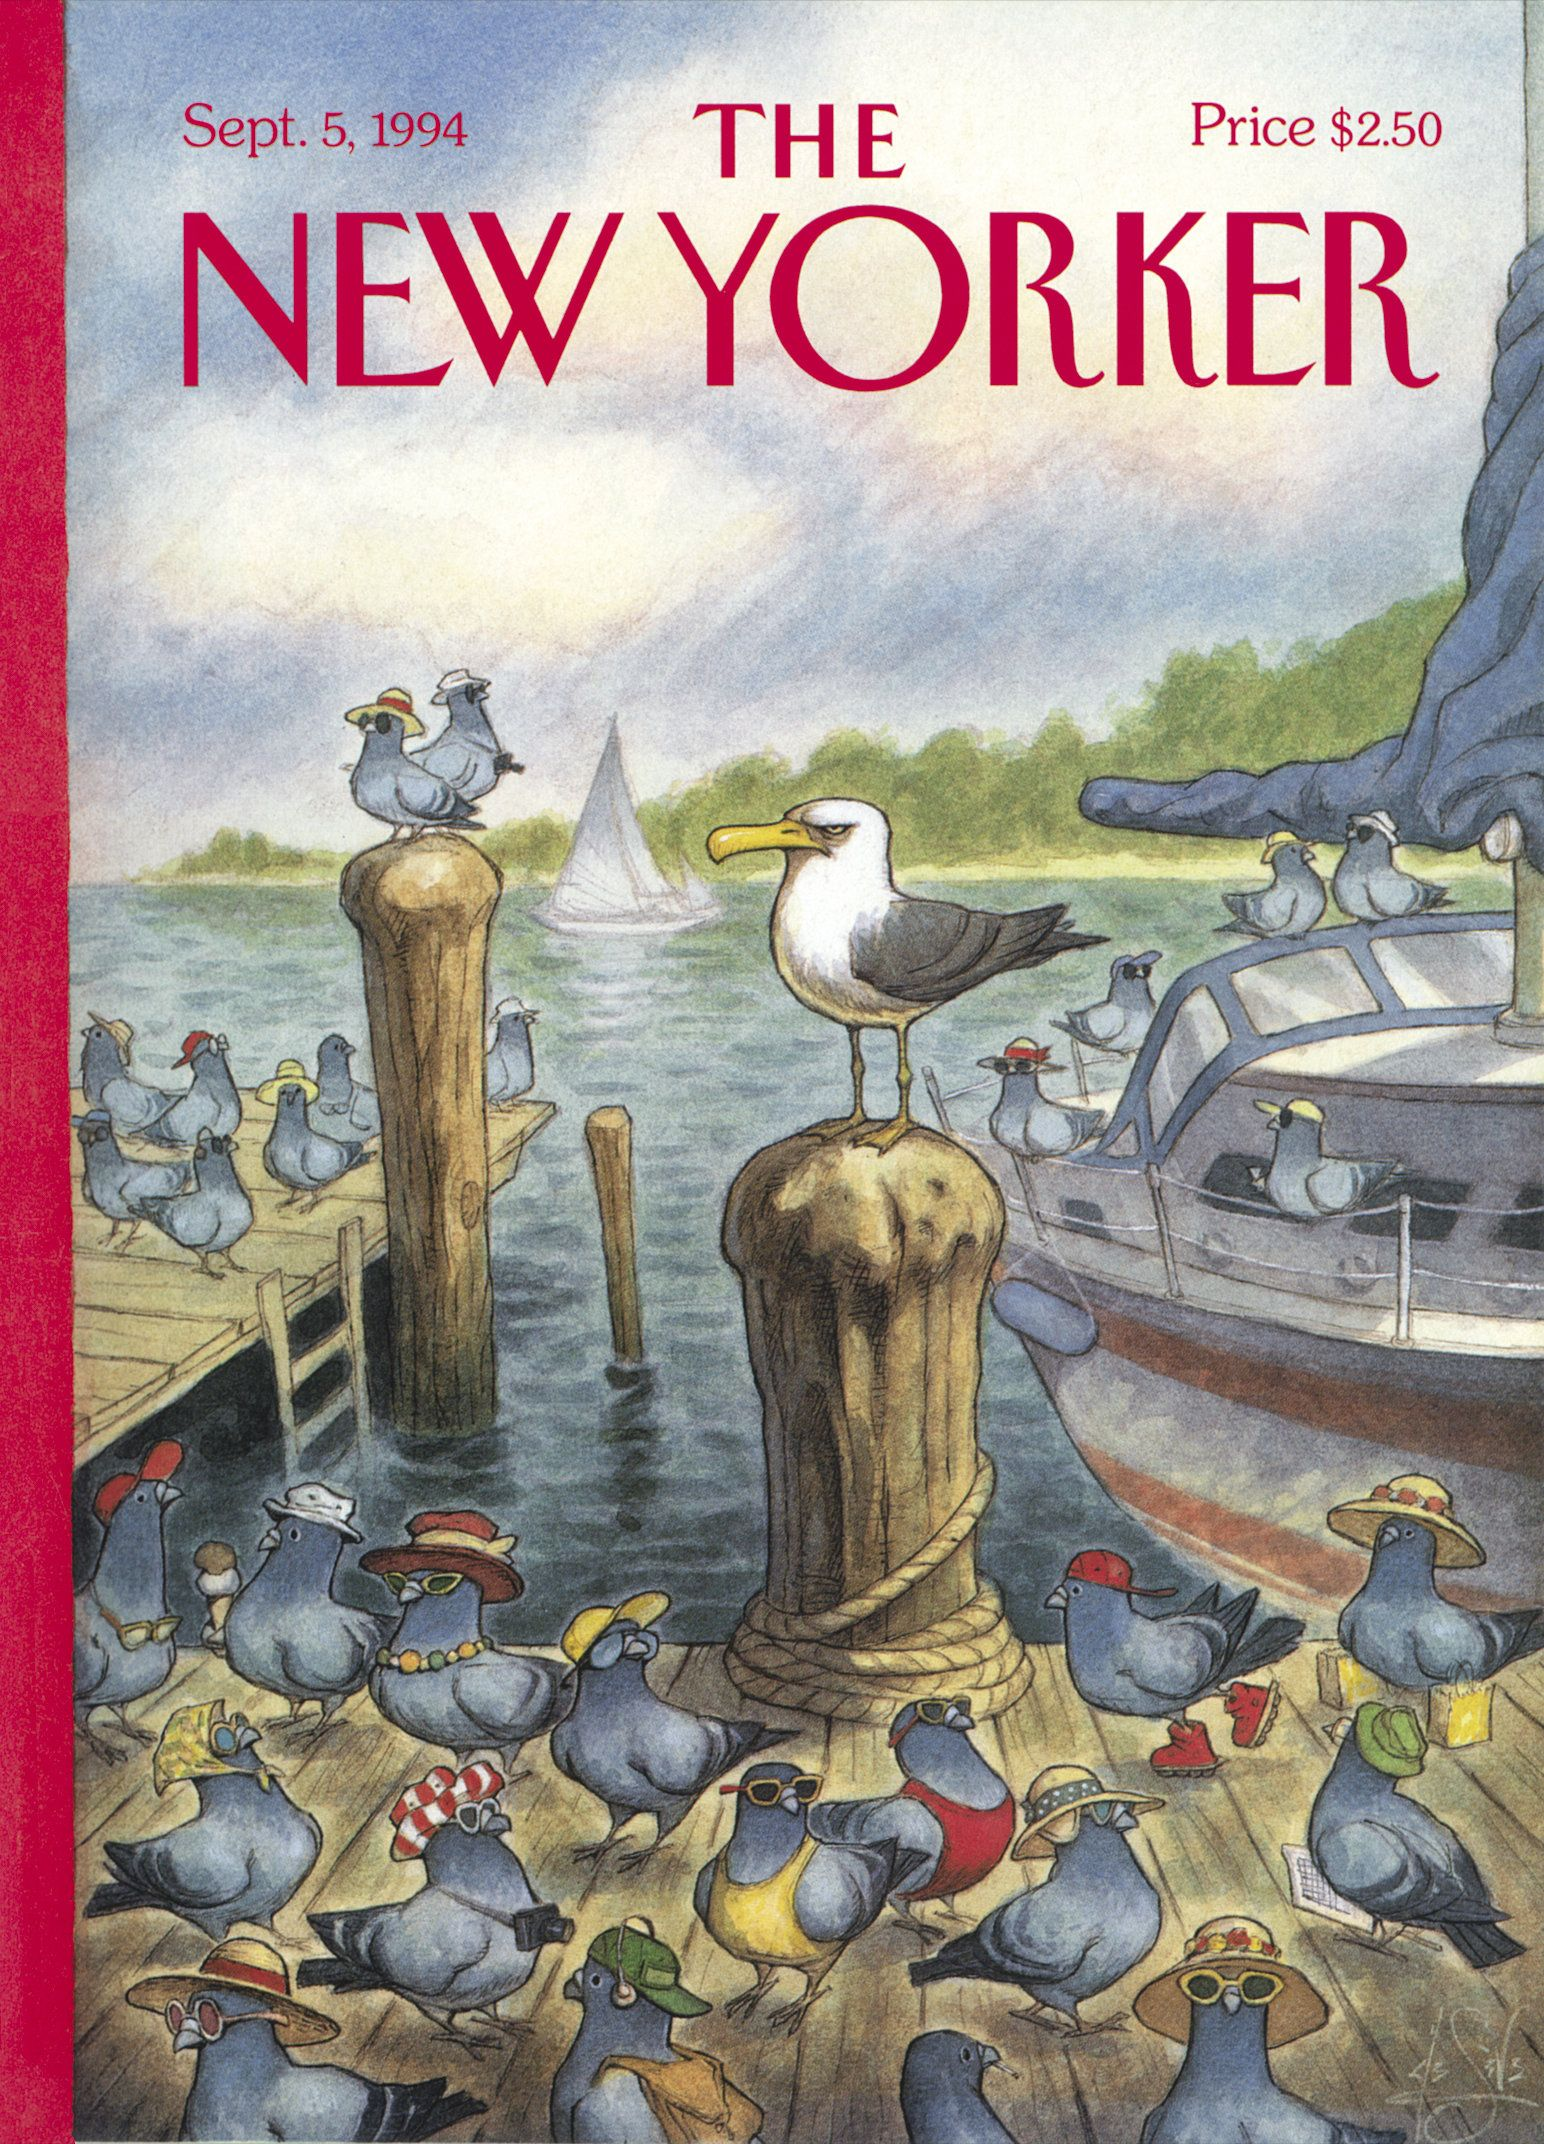 """The New Yorker - Monday, September 5, 1994 - Issue # 3624 - Vol. 70 - N° 26 - Cover """"Labor Day"""" by Peter de Sève"""